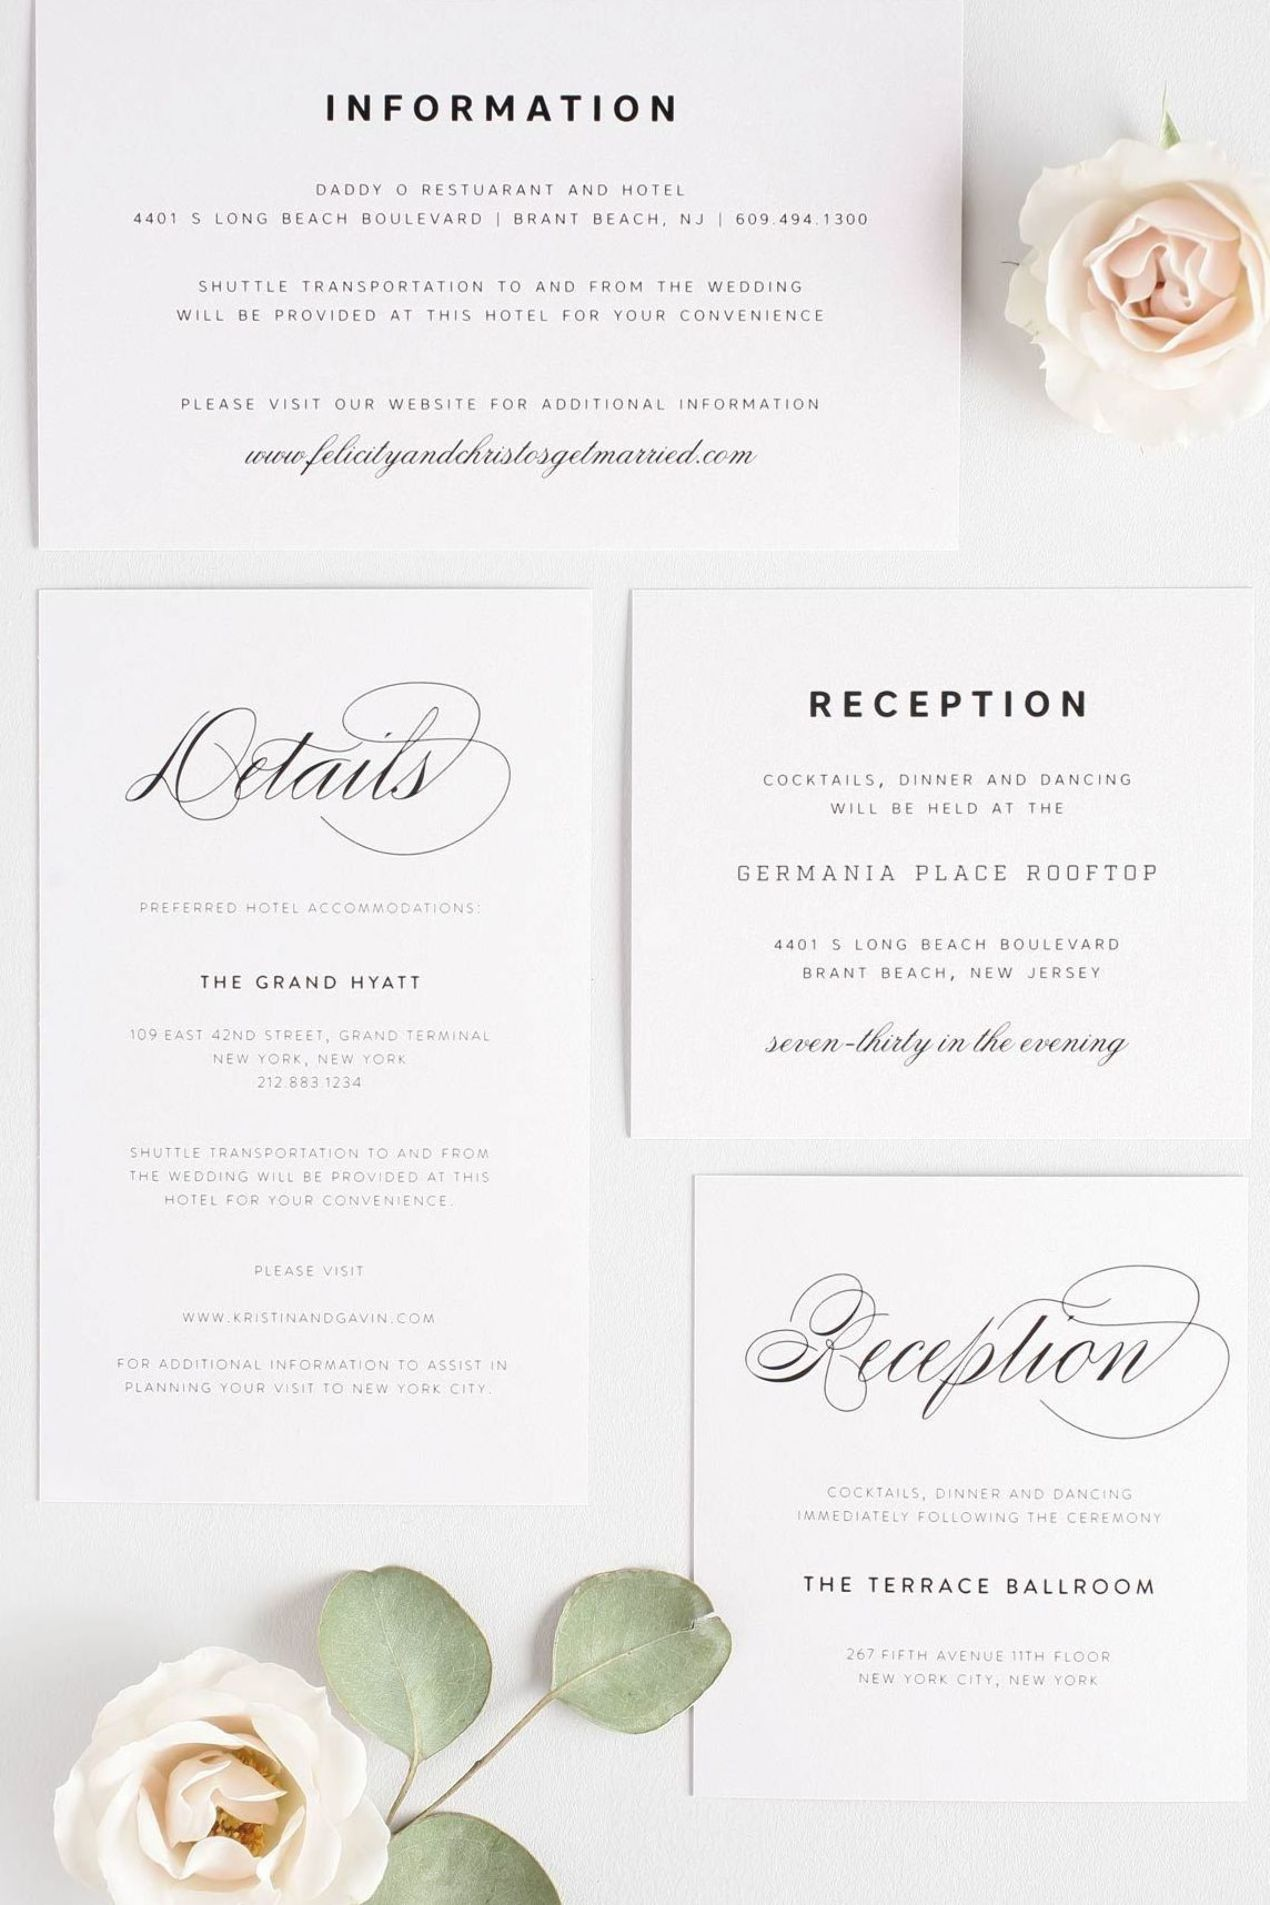 Small And Large Enclosure Wording 101 Travel Accommodations Rec Wedding Invitation Details Card Wording Wedding Invitation Details Card Wedding Invitations